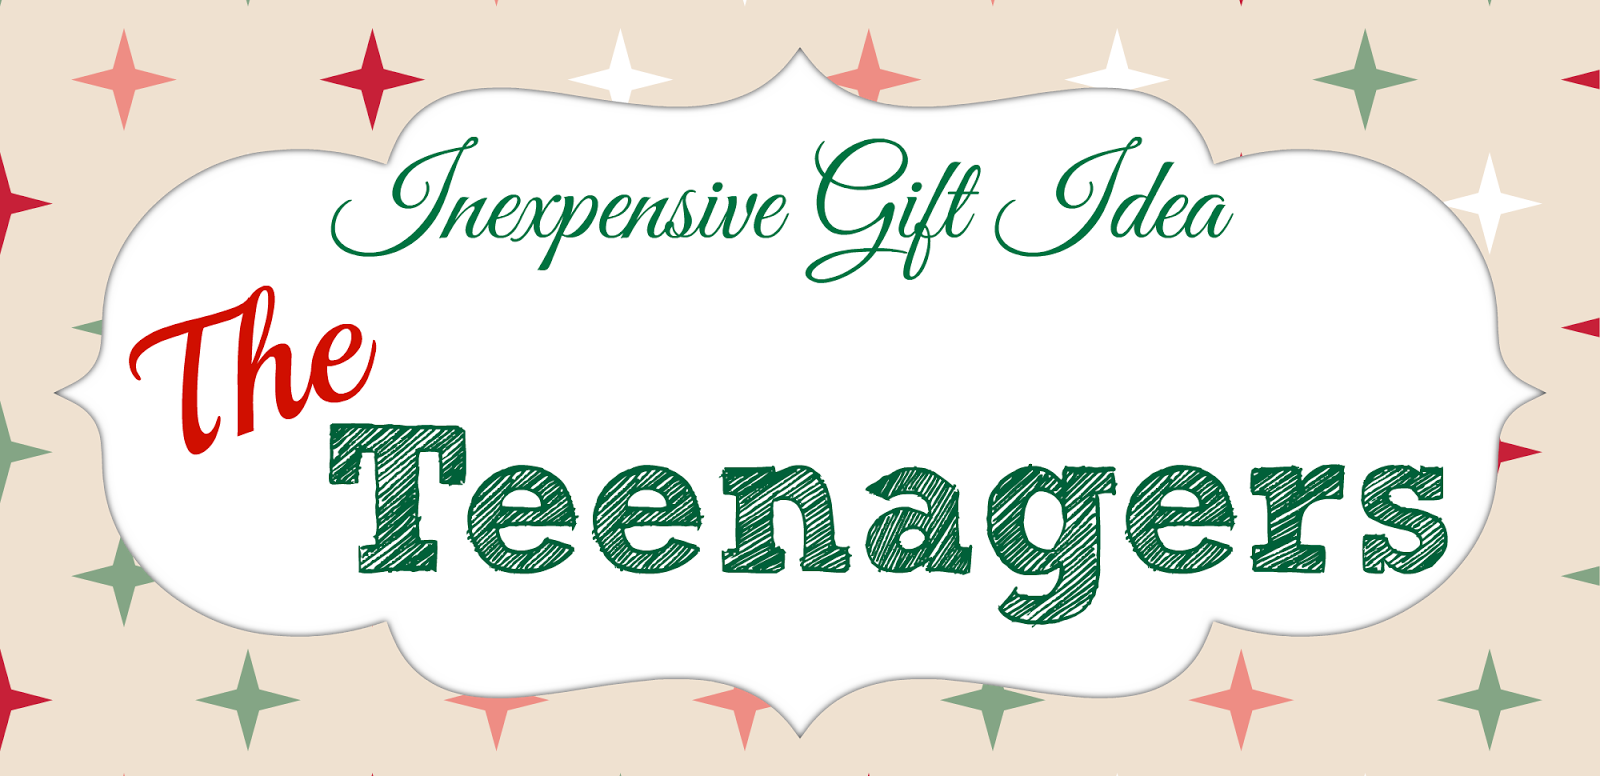 Orchard Girls: Inexpensive Christmas Gifts: For The Whole